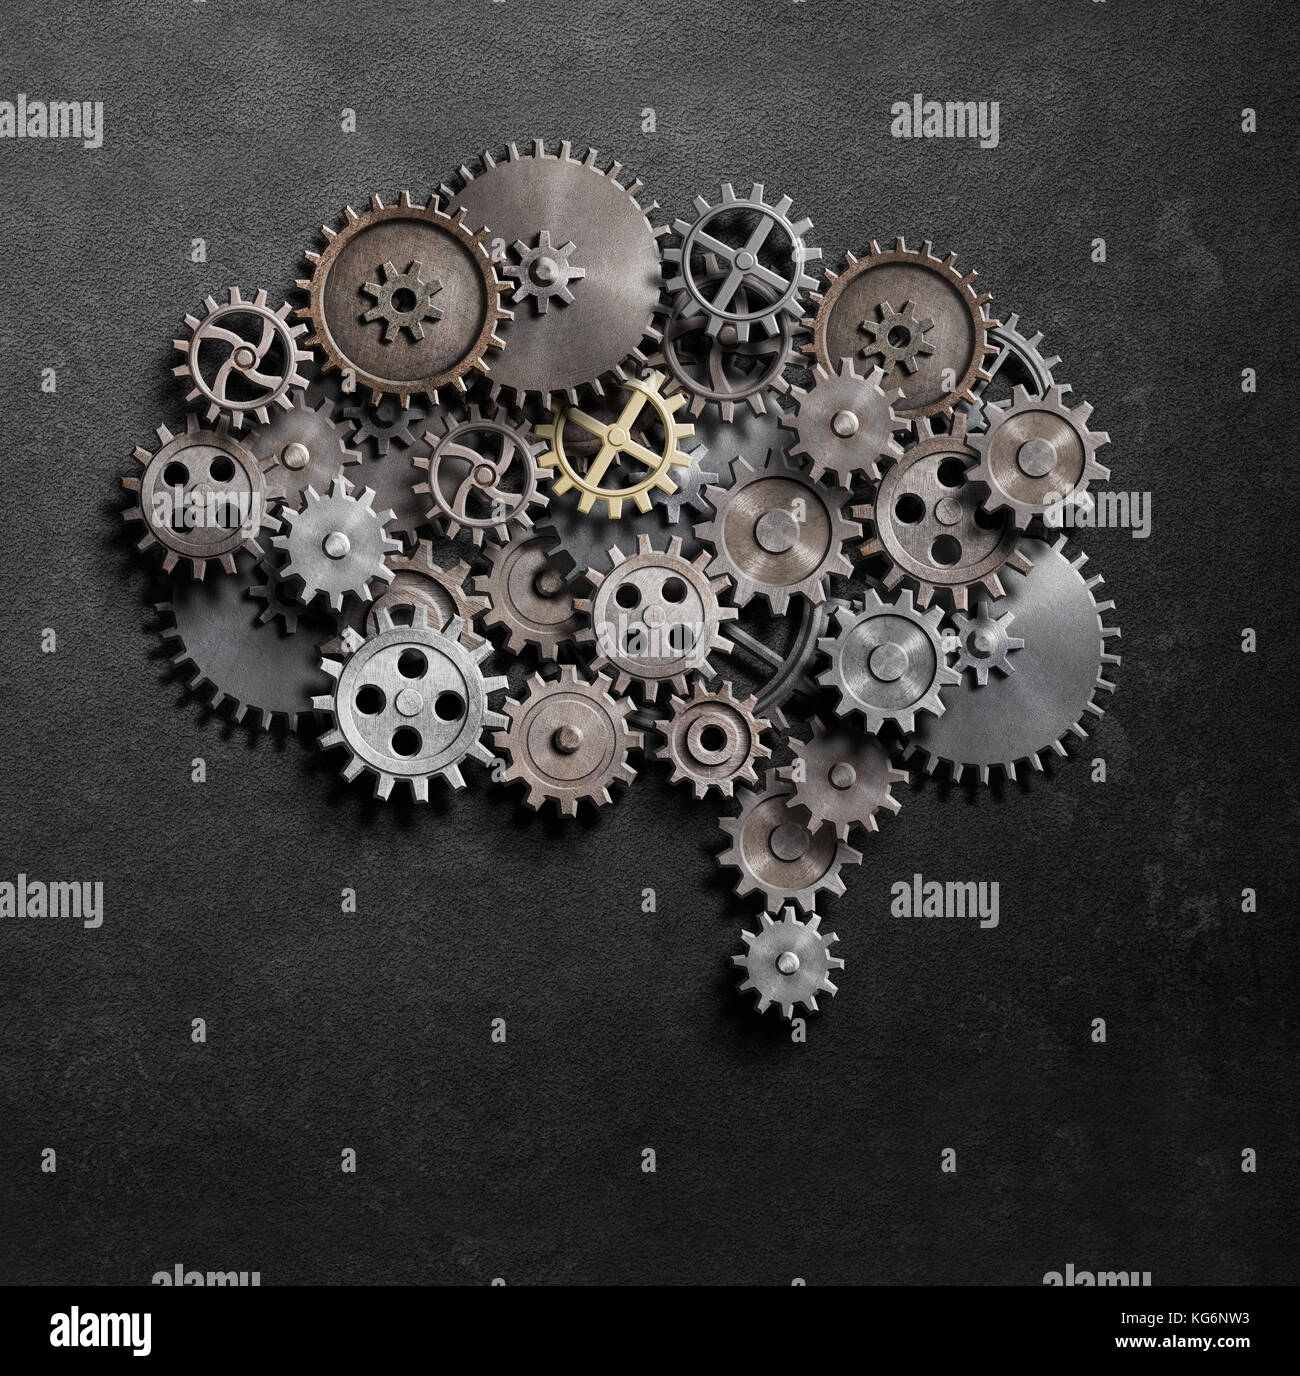 Brain gears and cogs model 3d illustration - Stock Image